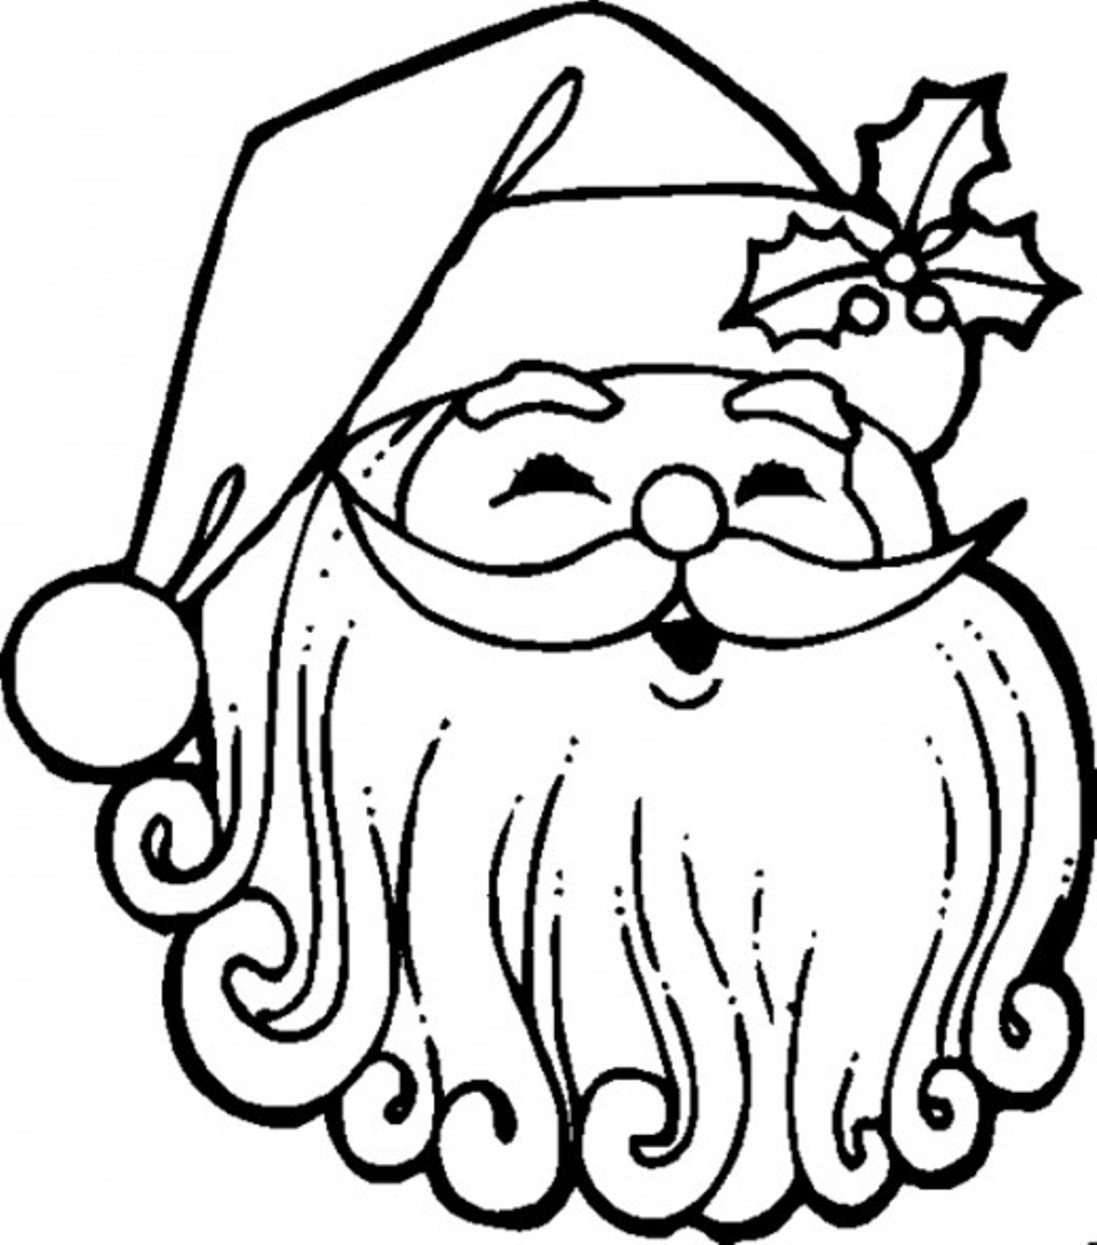 Kids Christmas Santa Claus Coloring Page With Pages Free Download Best